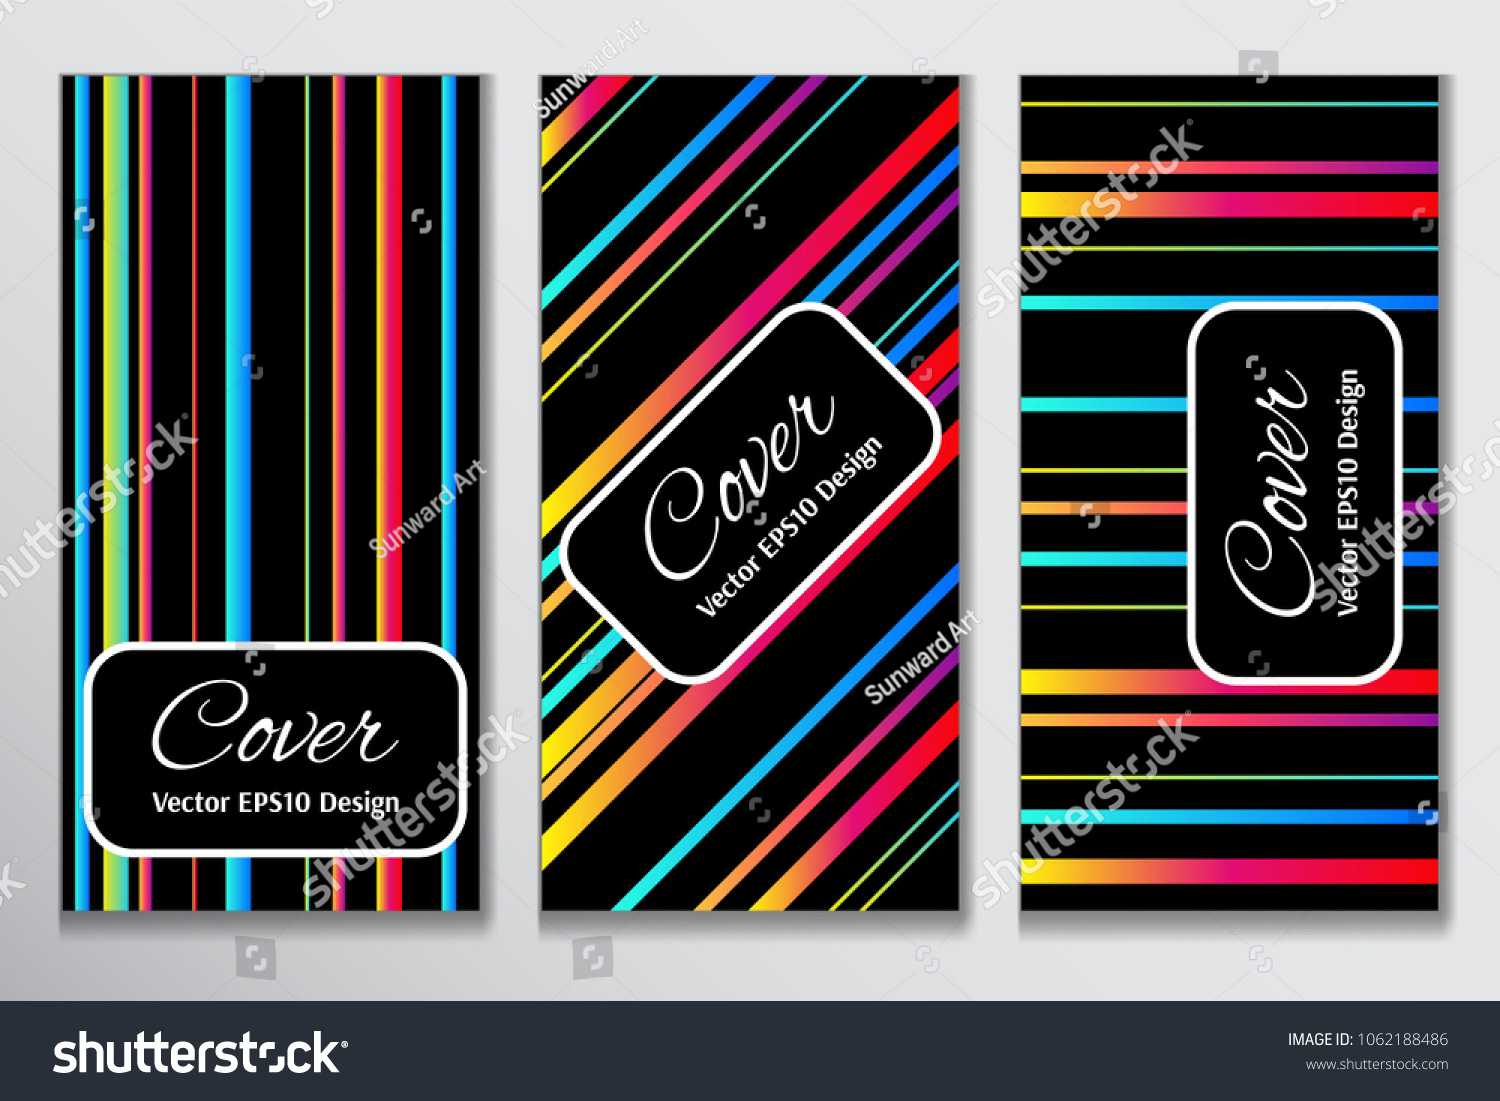 Trendy Cover Gradient Stripe Clipart Contrast Stock Vector (Royalty.